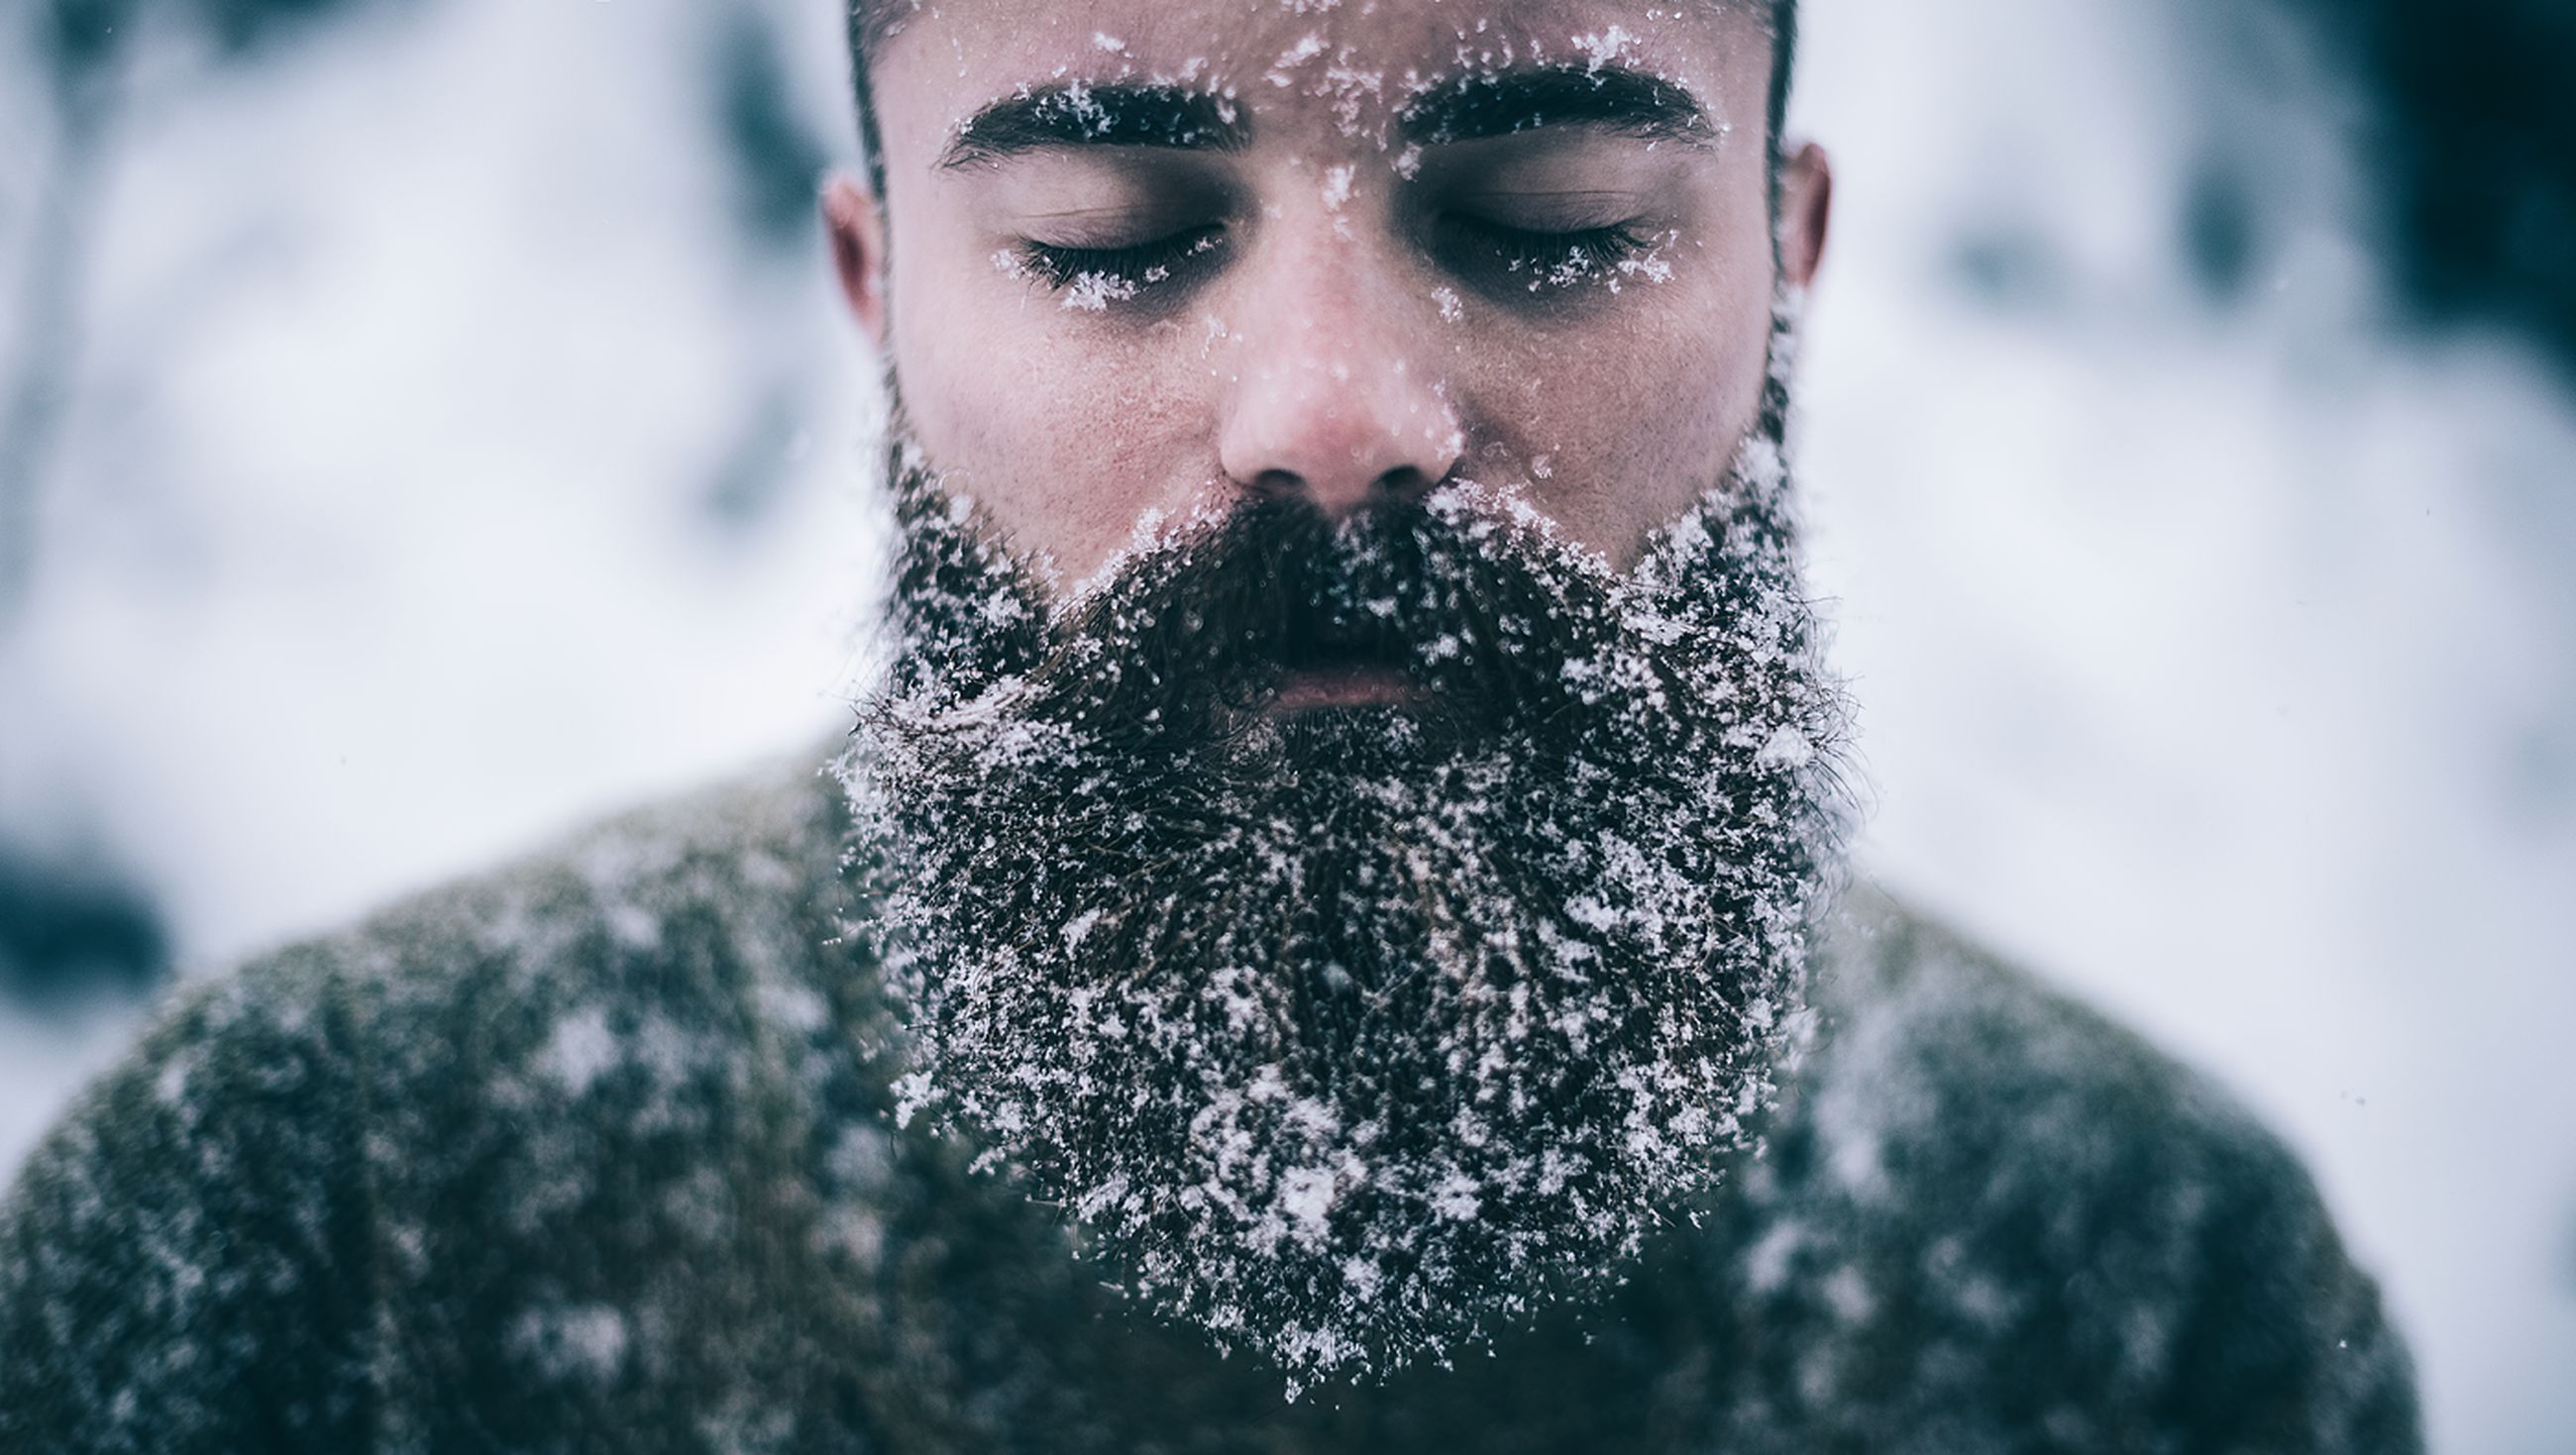 focus on foreground, close-up, looking at camera, portrait, front view, lifestyles, selective focus, cold temperature, leisure activity, winter, headshot, day, one animal, outdoors, covering, animal themes, nature, snow